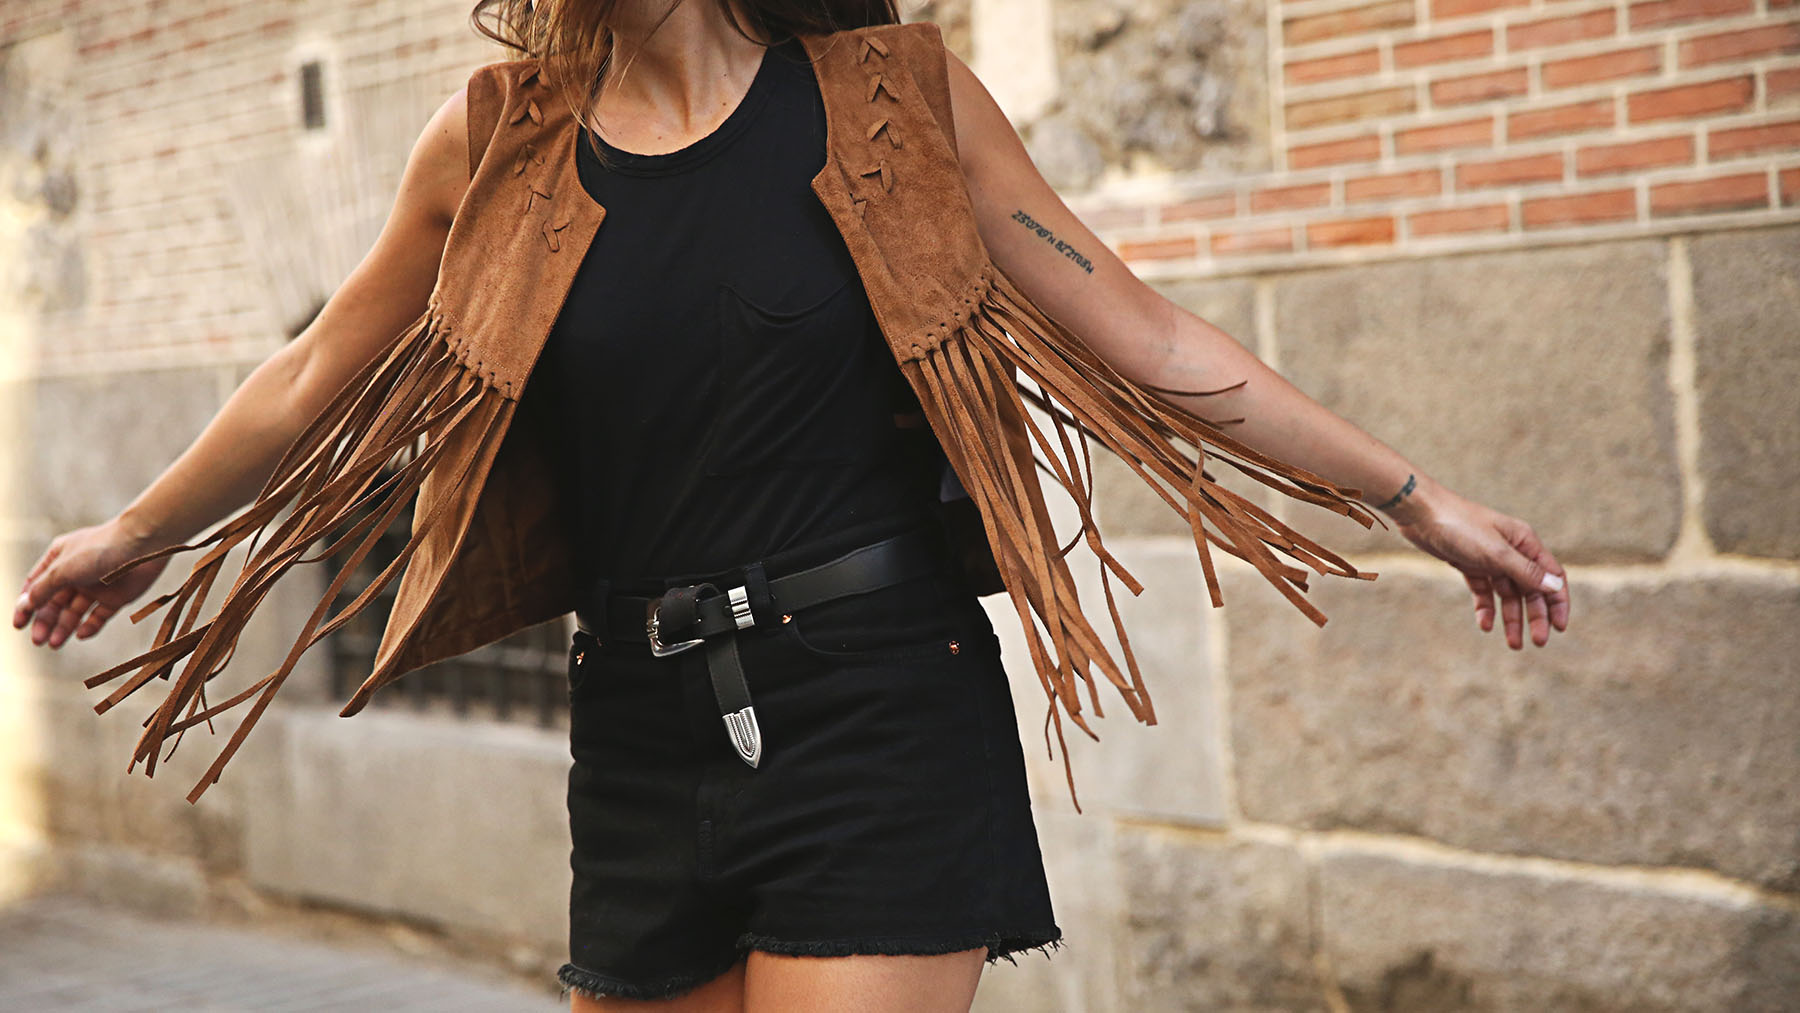 trendy-taste-look-outfit-street-style-ootd-blog-blogger-fashion-spain-moda-españa-chaleco-flecos-fringed-vest-balenciaga-mustt-botines-camperos-shorts-negros-dior-sunnies-gafas-4